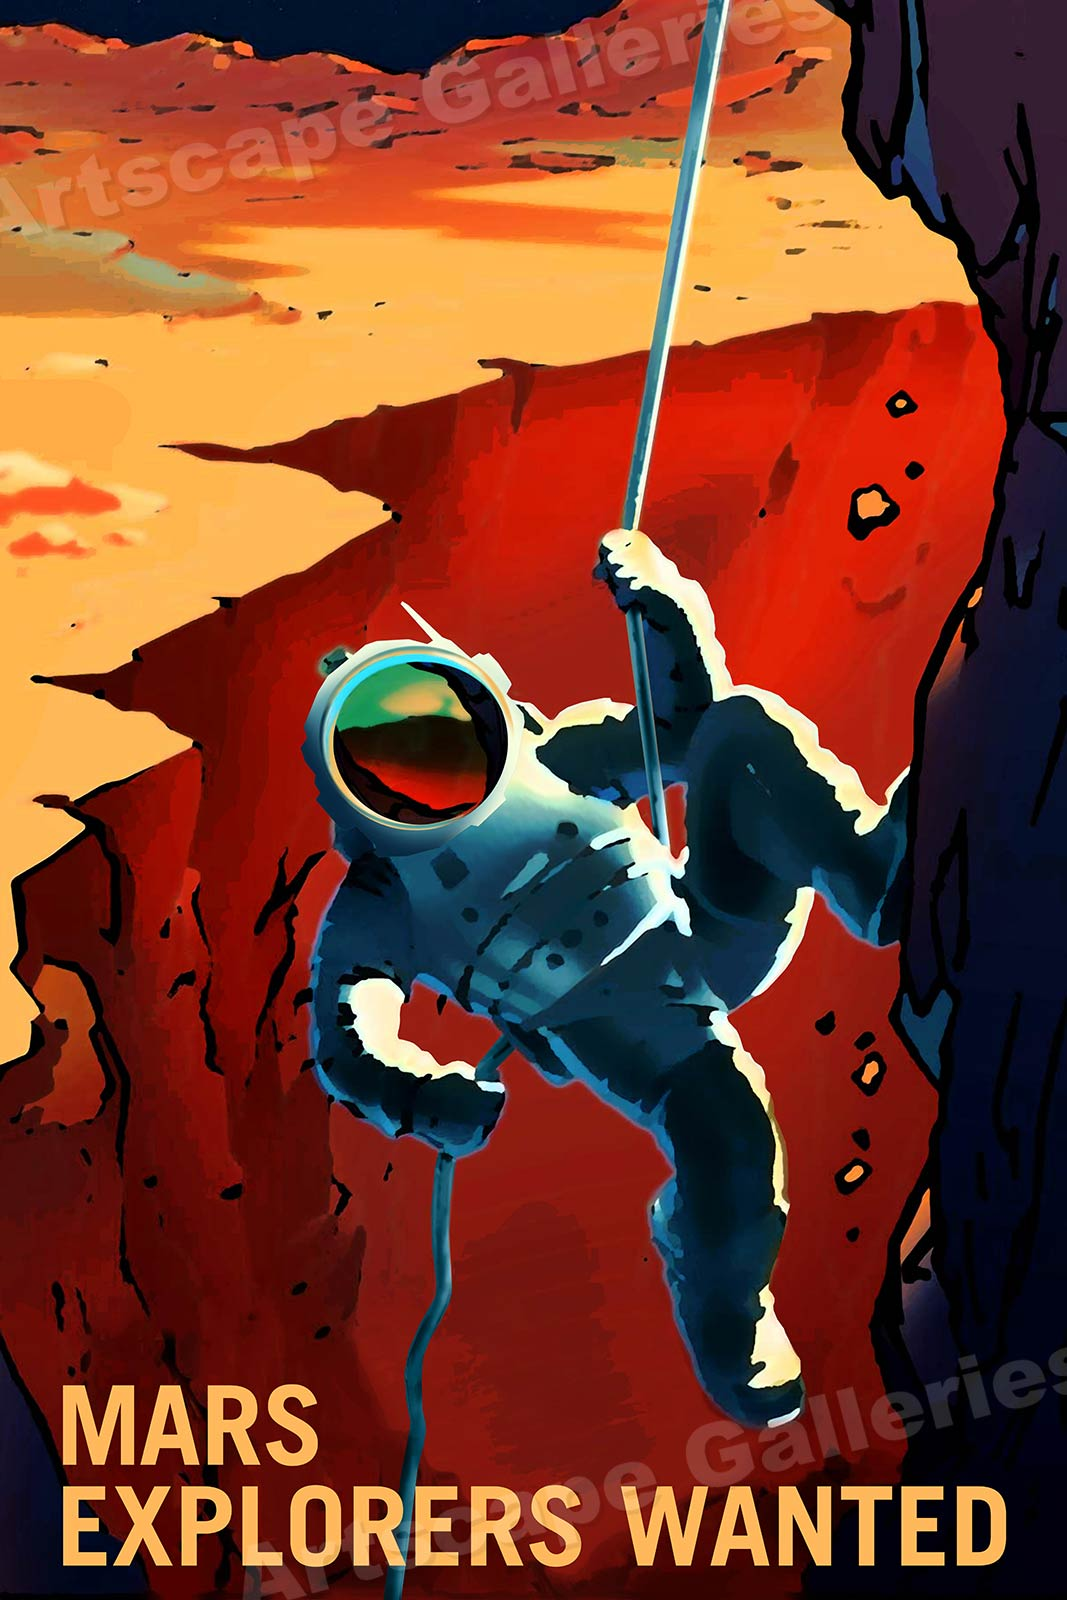 20x30 Retro Style Space Exploration Poster Some User Assembly Required